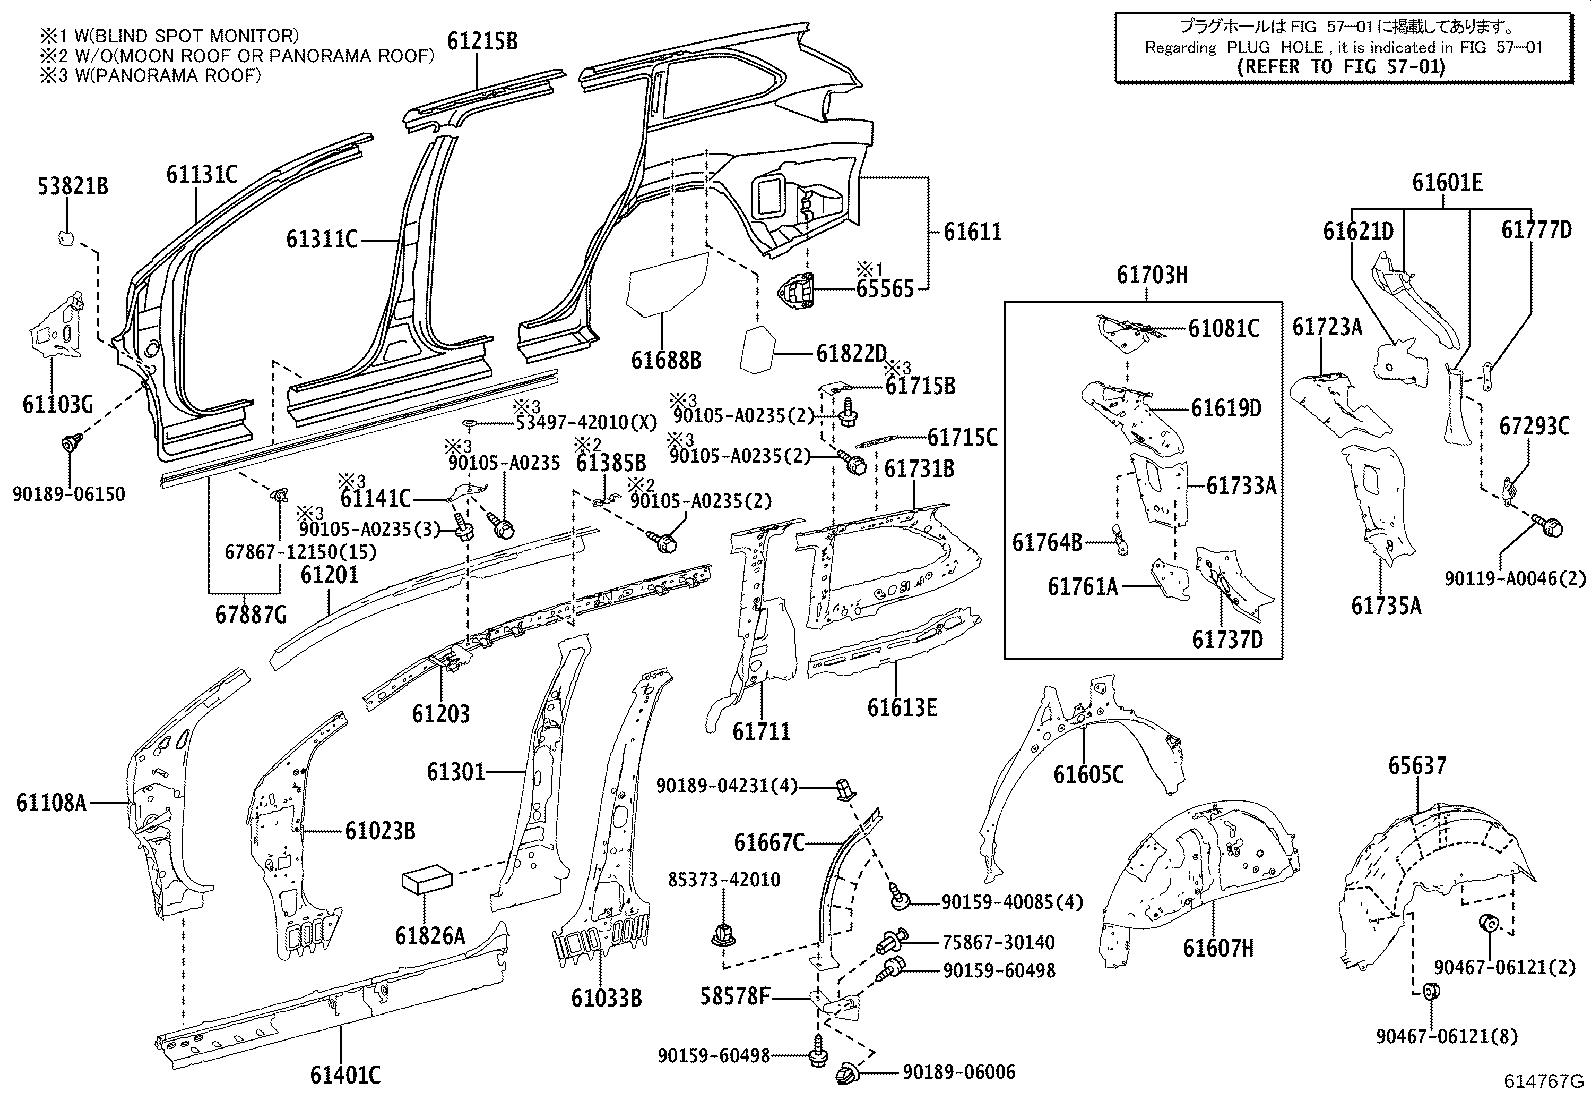 🏆 [DIAGRAM in Pictures Database] Wiring Diagram 2002 Toyota Highlander  Interior Just Download or Read Highlander Interior - DIAGRAM -GANTT.ONYXUM.COMComplete Diagram Picture Database - Onyxum.com